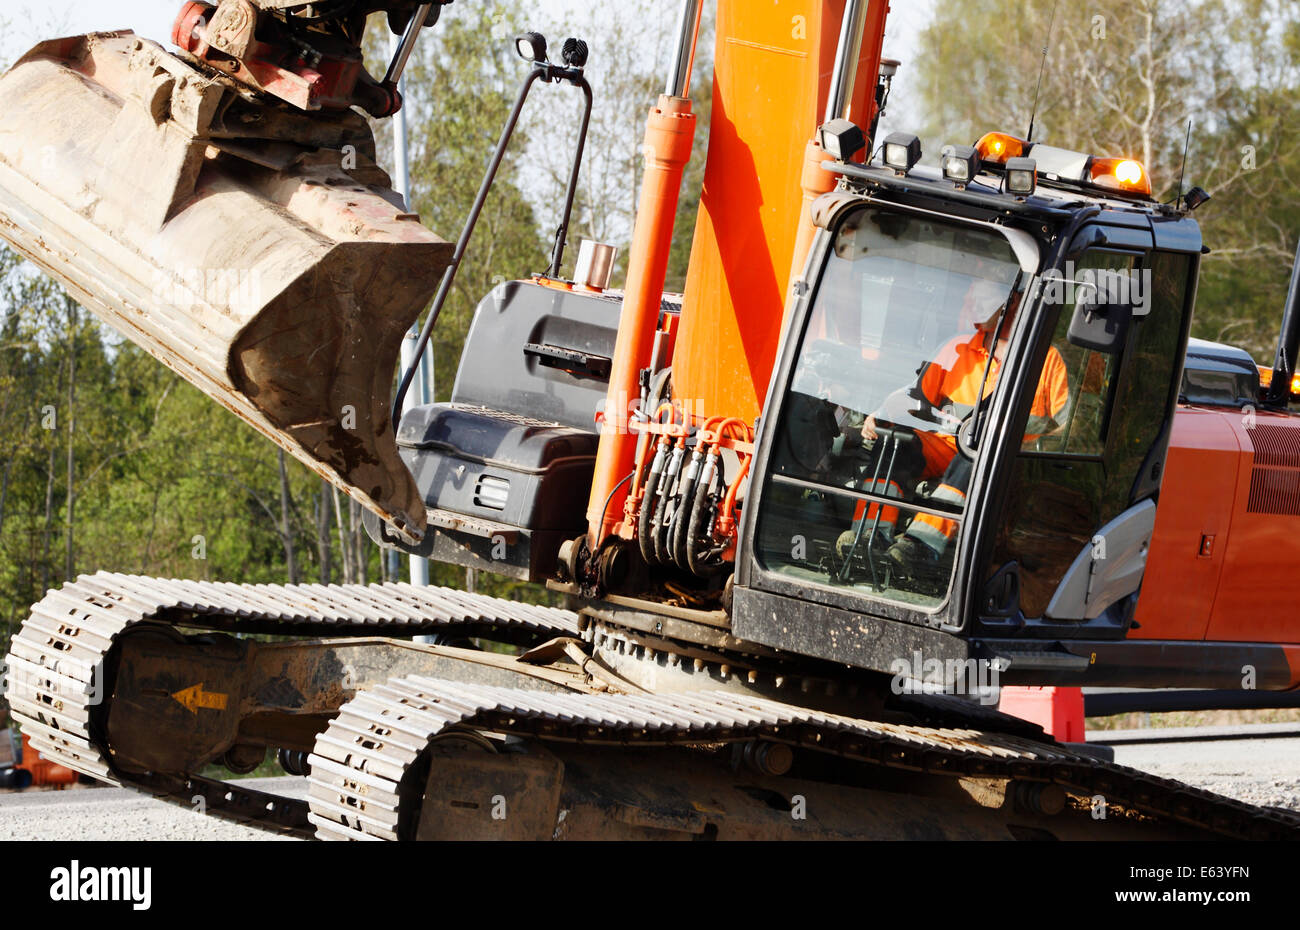 bulldozer, digger in action, excavating in a close-up concept - Stock Image